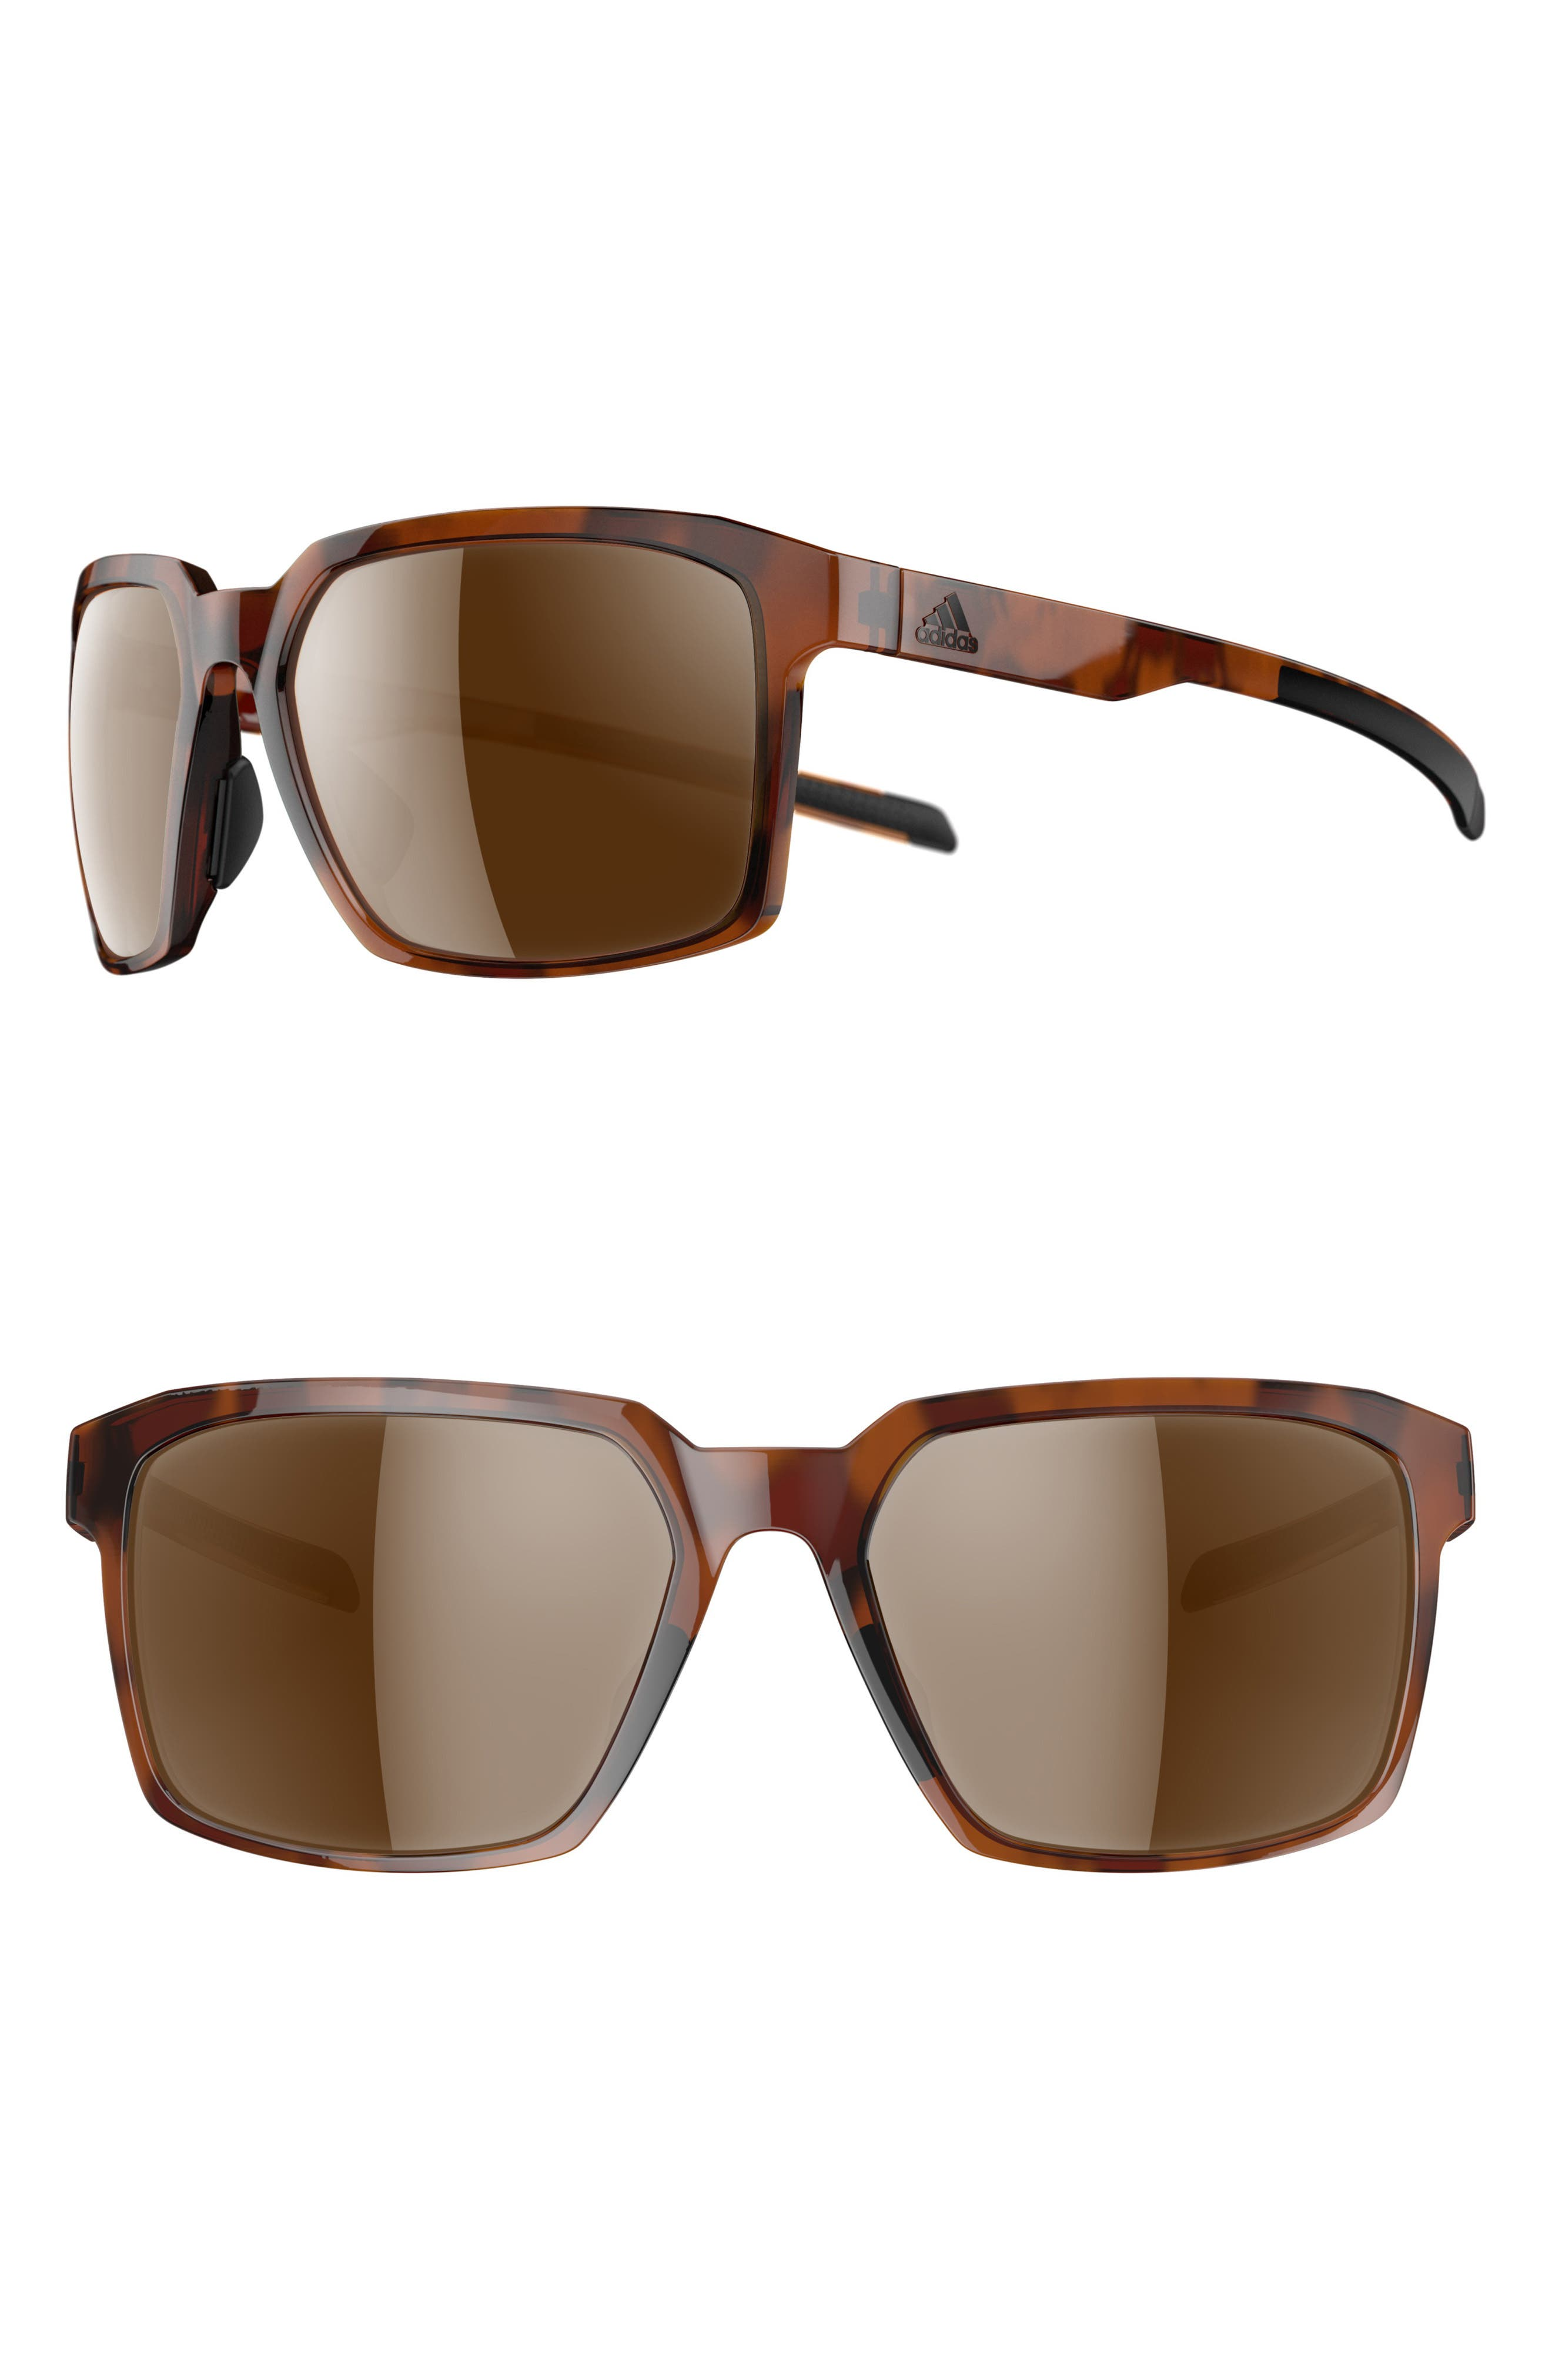 Evolver LST 60mm Sunglasses,                         Main,                         color, BROWN HAVANA/ CONTRAST SILVER